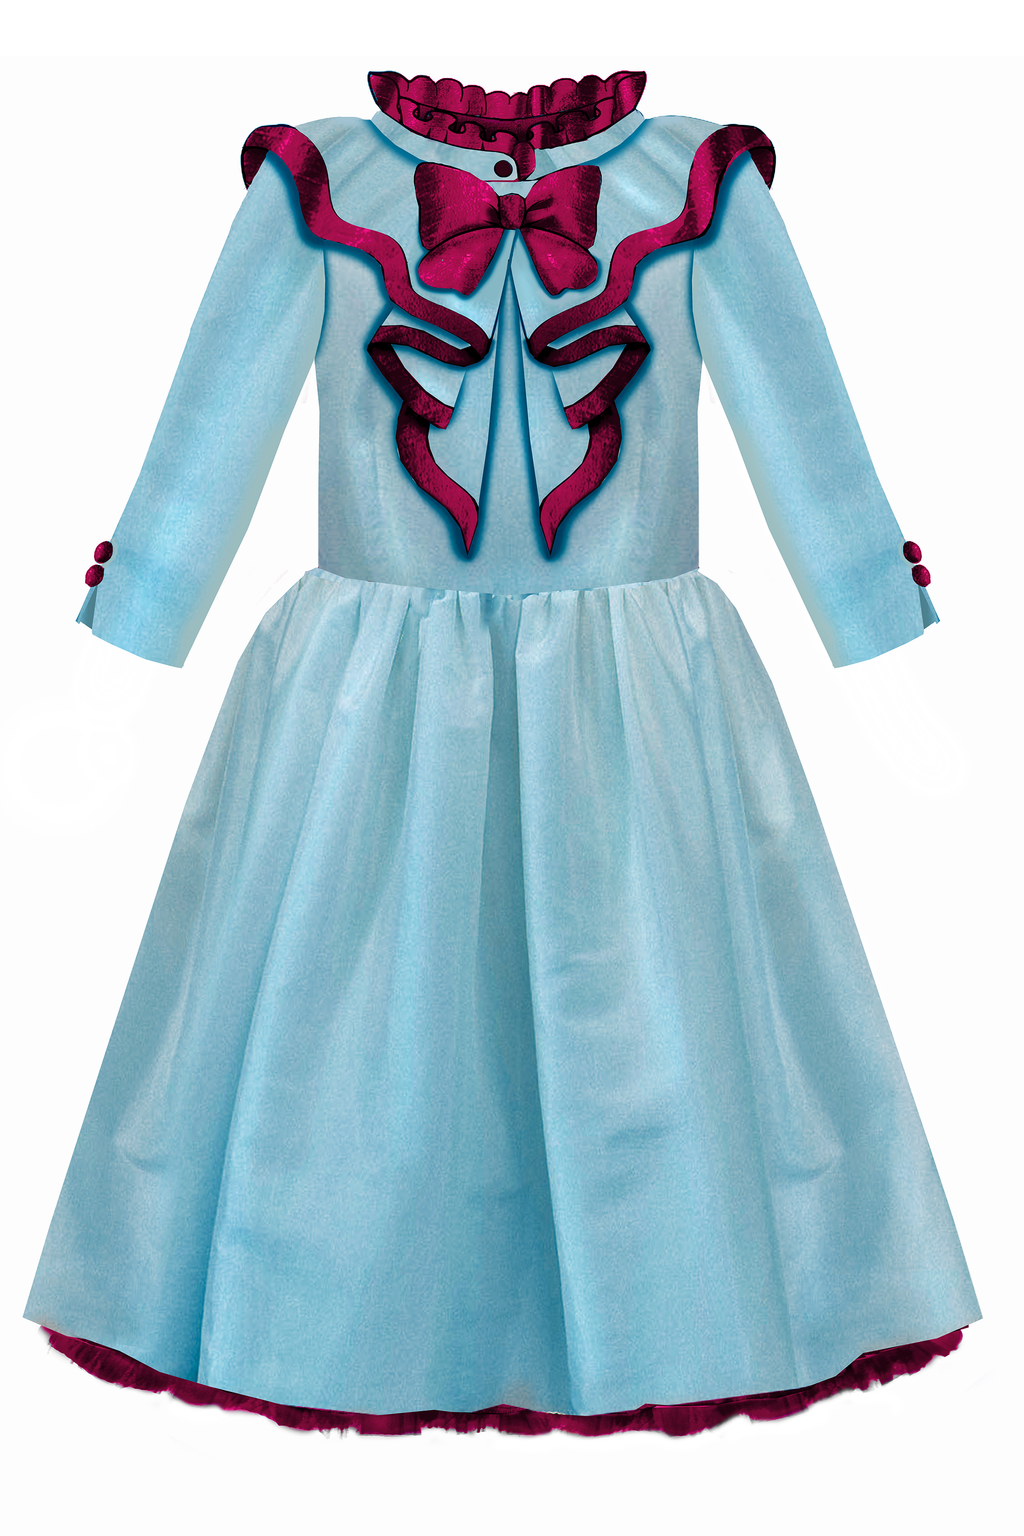 Elisabeth Flared Girls Dress in Sky Blue and Plum Taffeta